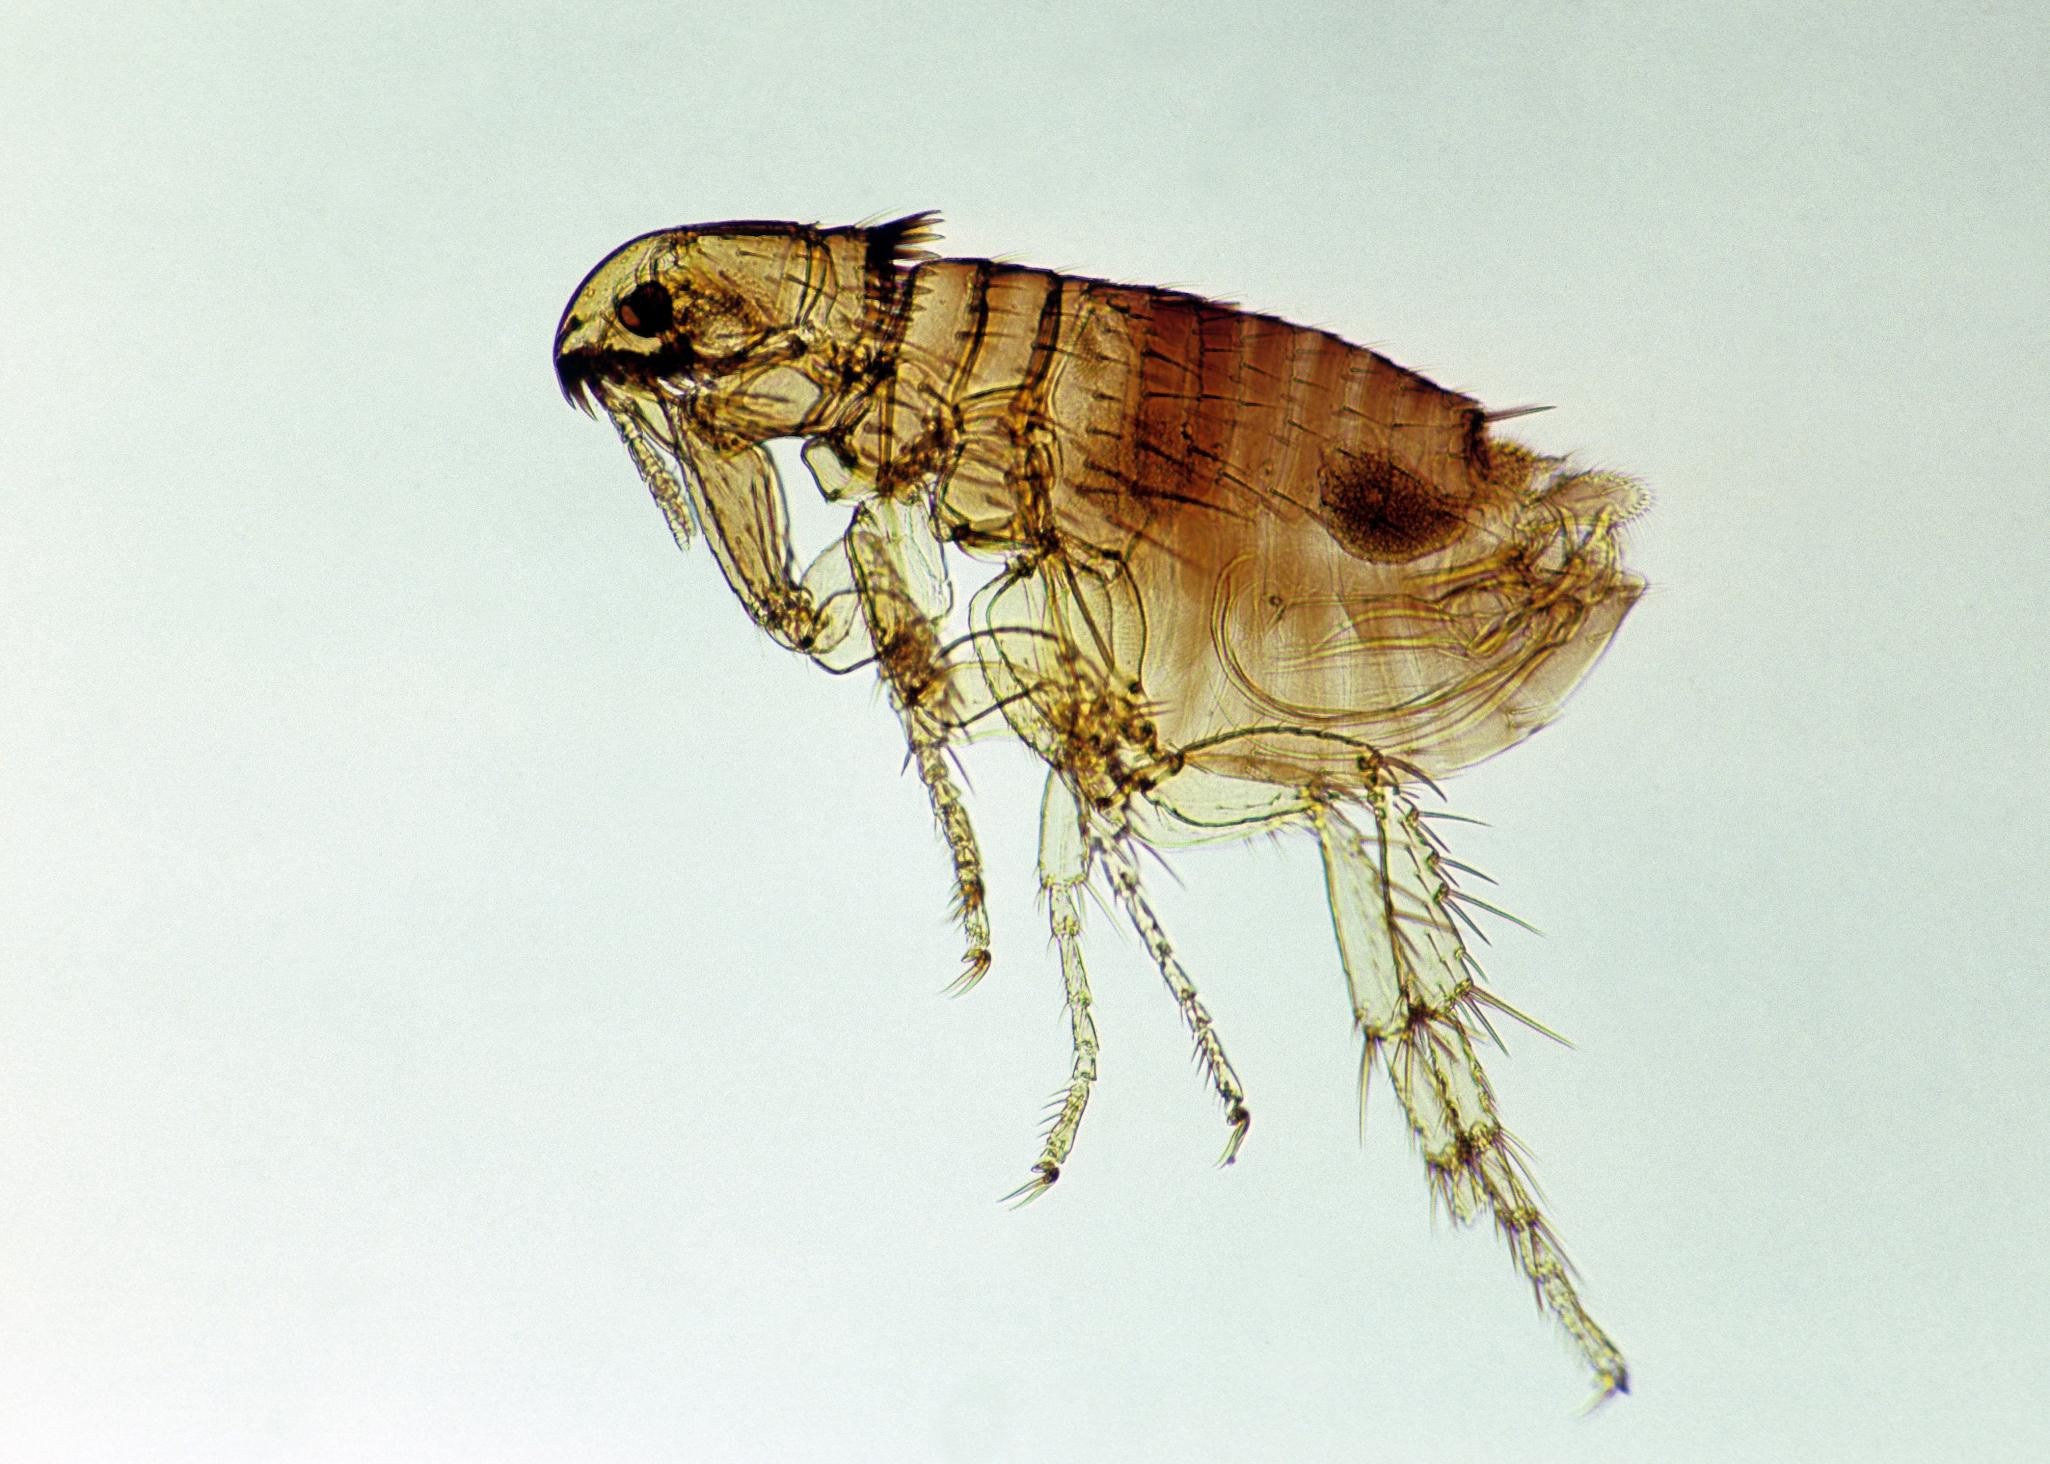 flea life cycles and how to get rid of fleas